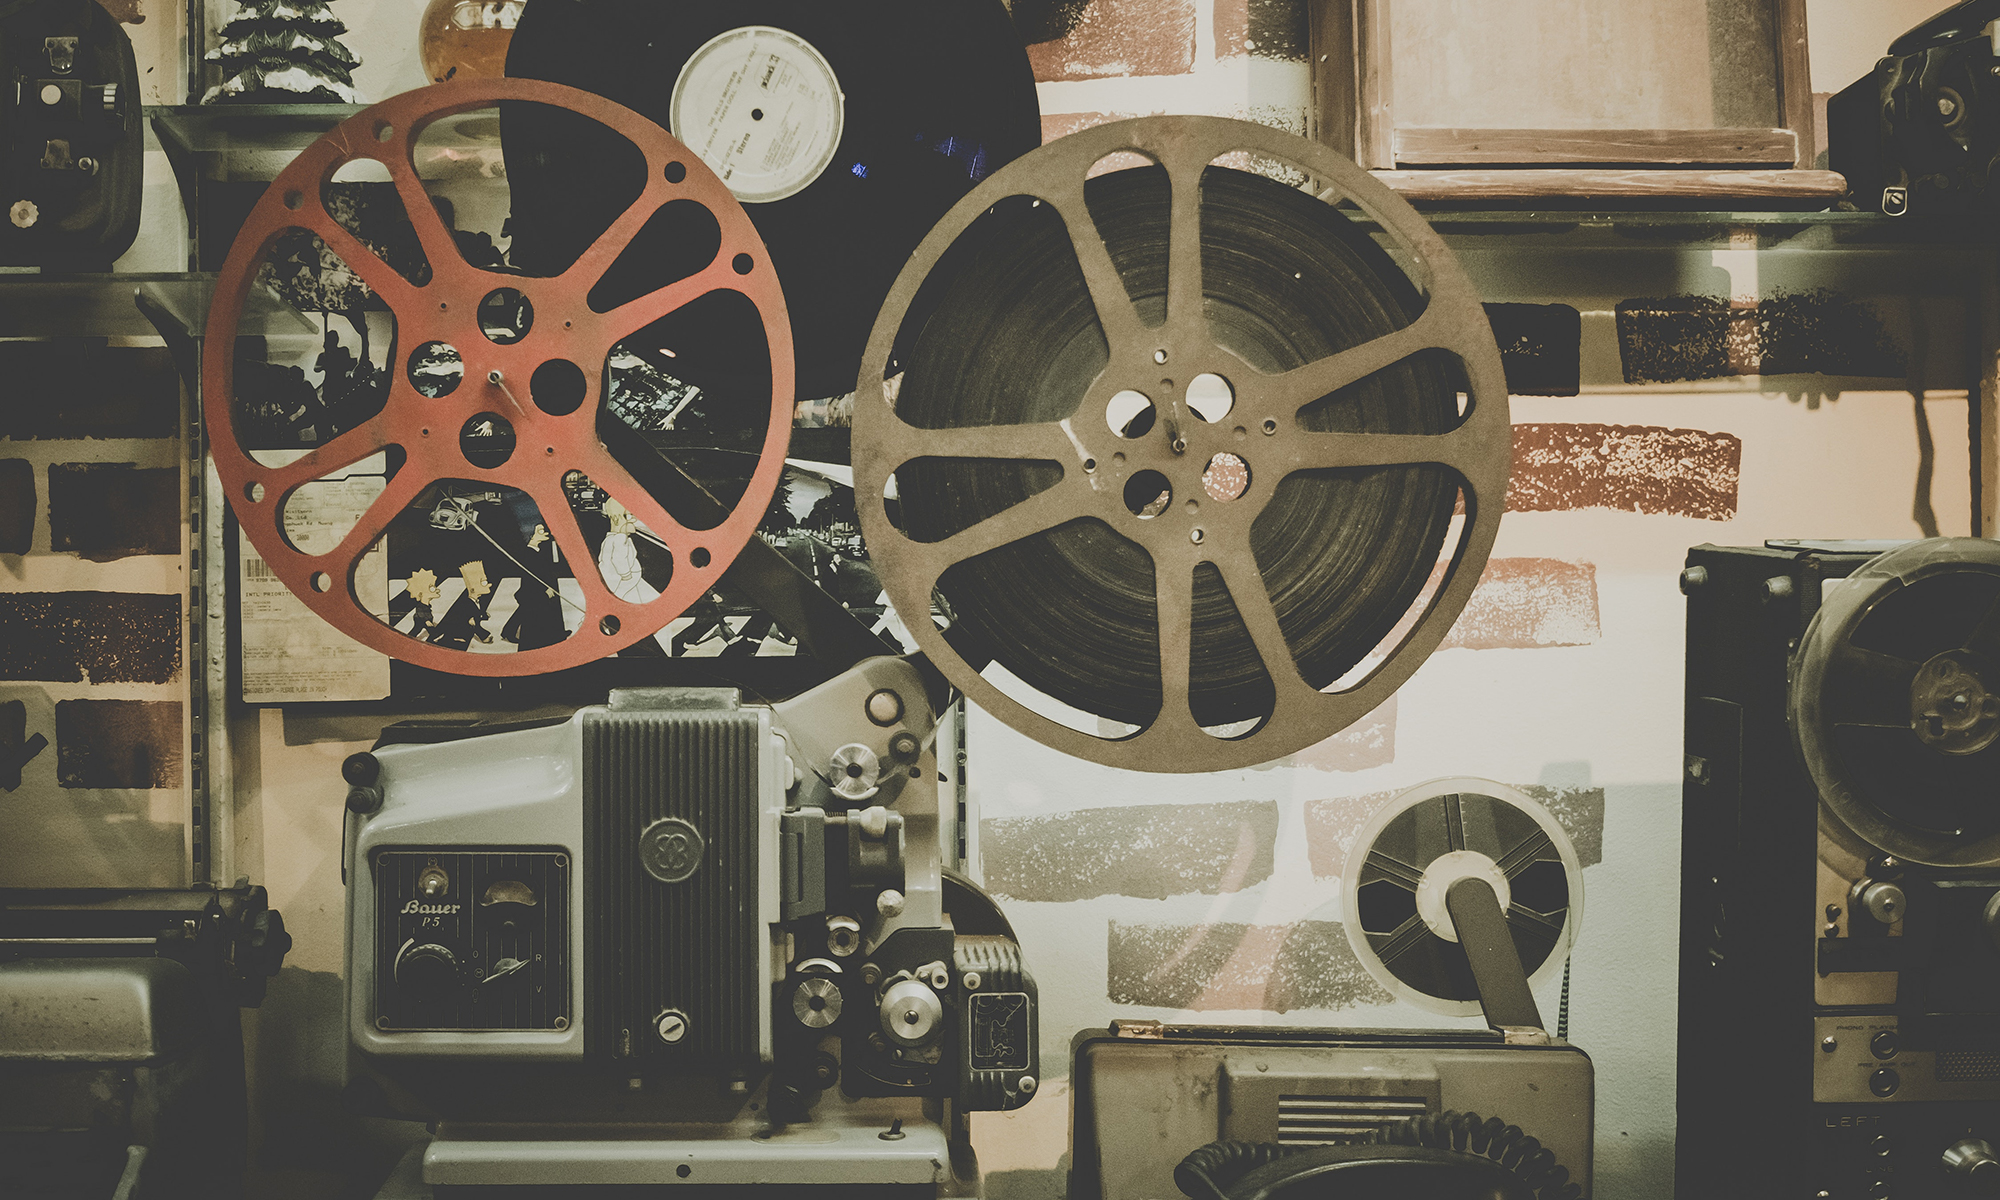 reel to reel projector and film